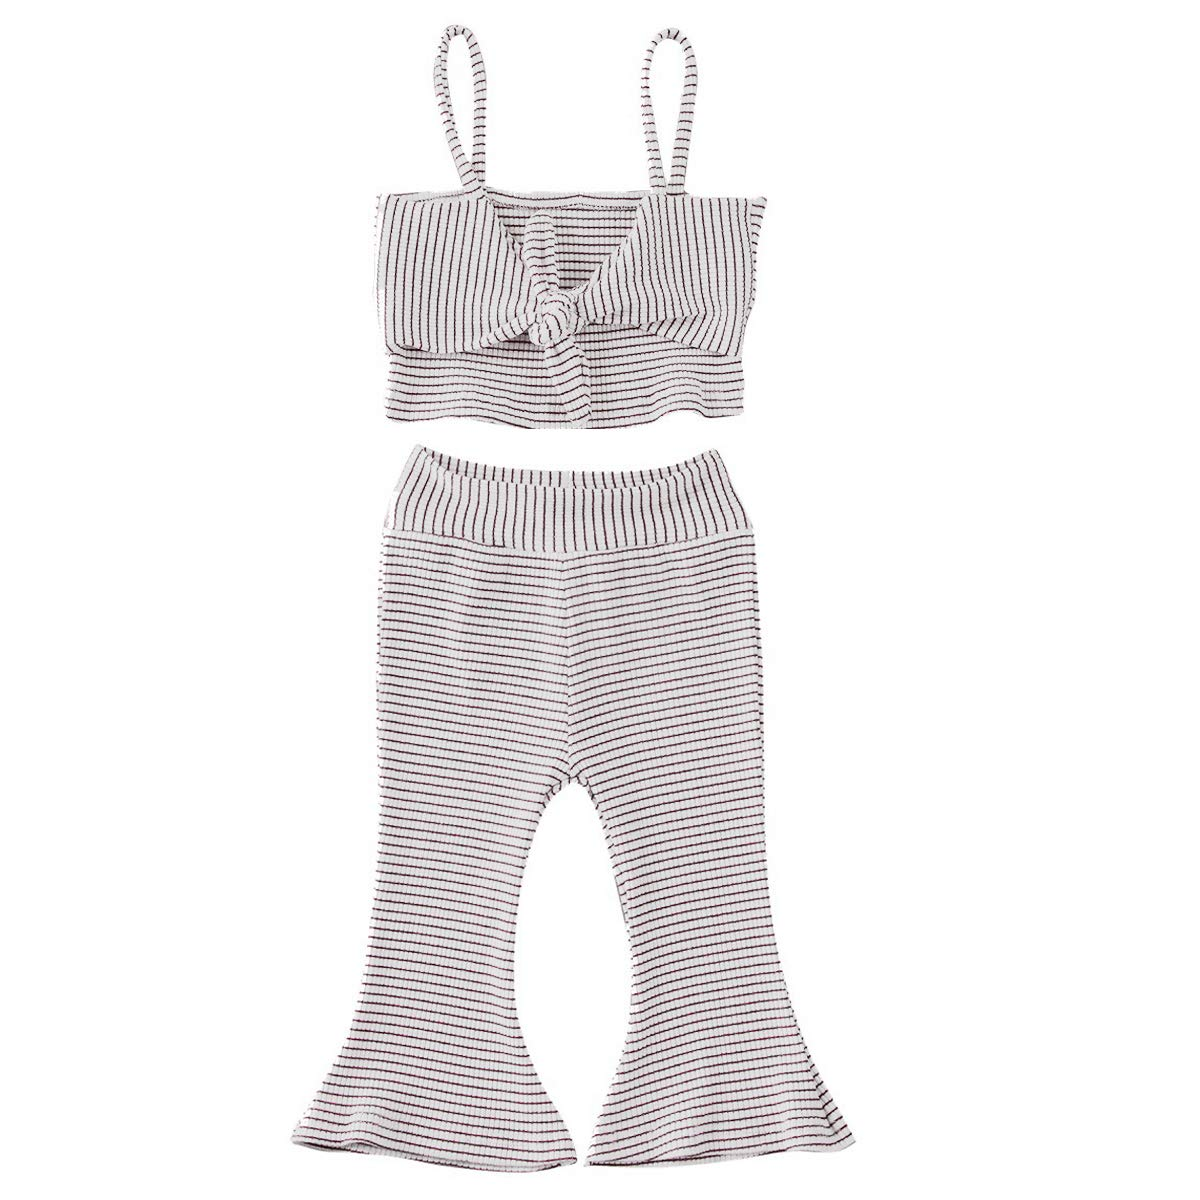 Toddler Baby Girl Striped Pants Set Bowknot Tied Halter Shirt Strap Crop Top Bell Bottom Pants Clothes Set